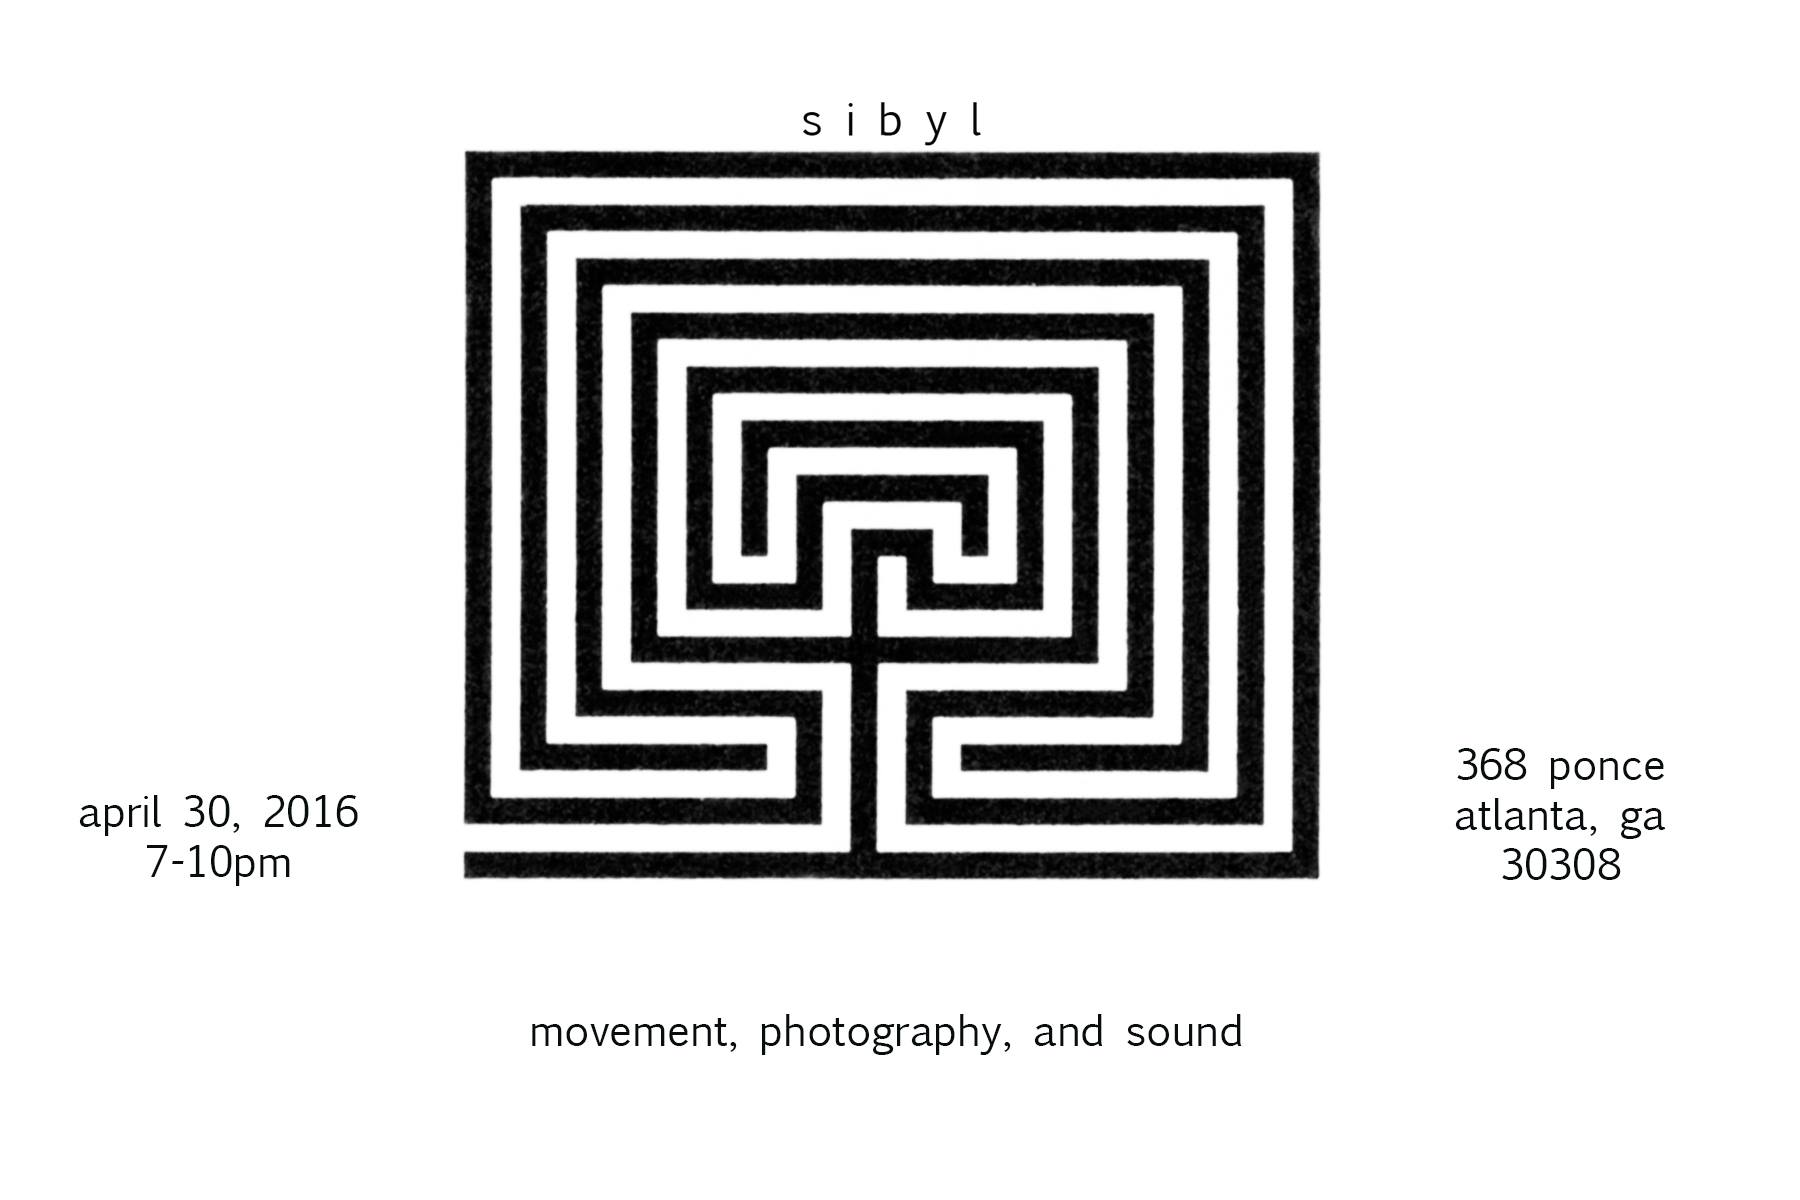 Through movement and sound, silence and reflection, sibyl embodies a healing space.